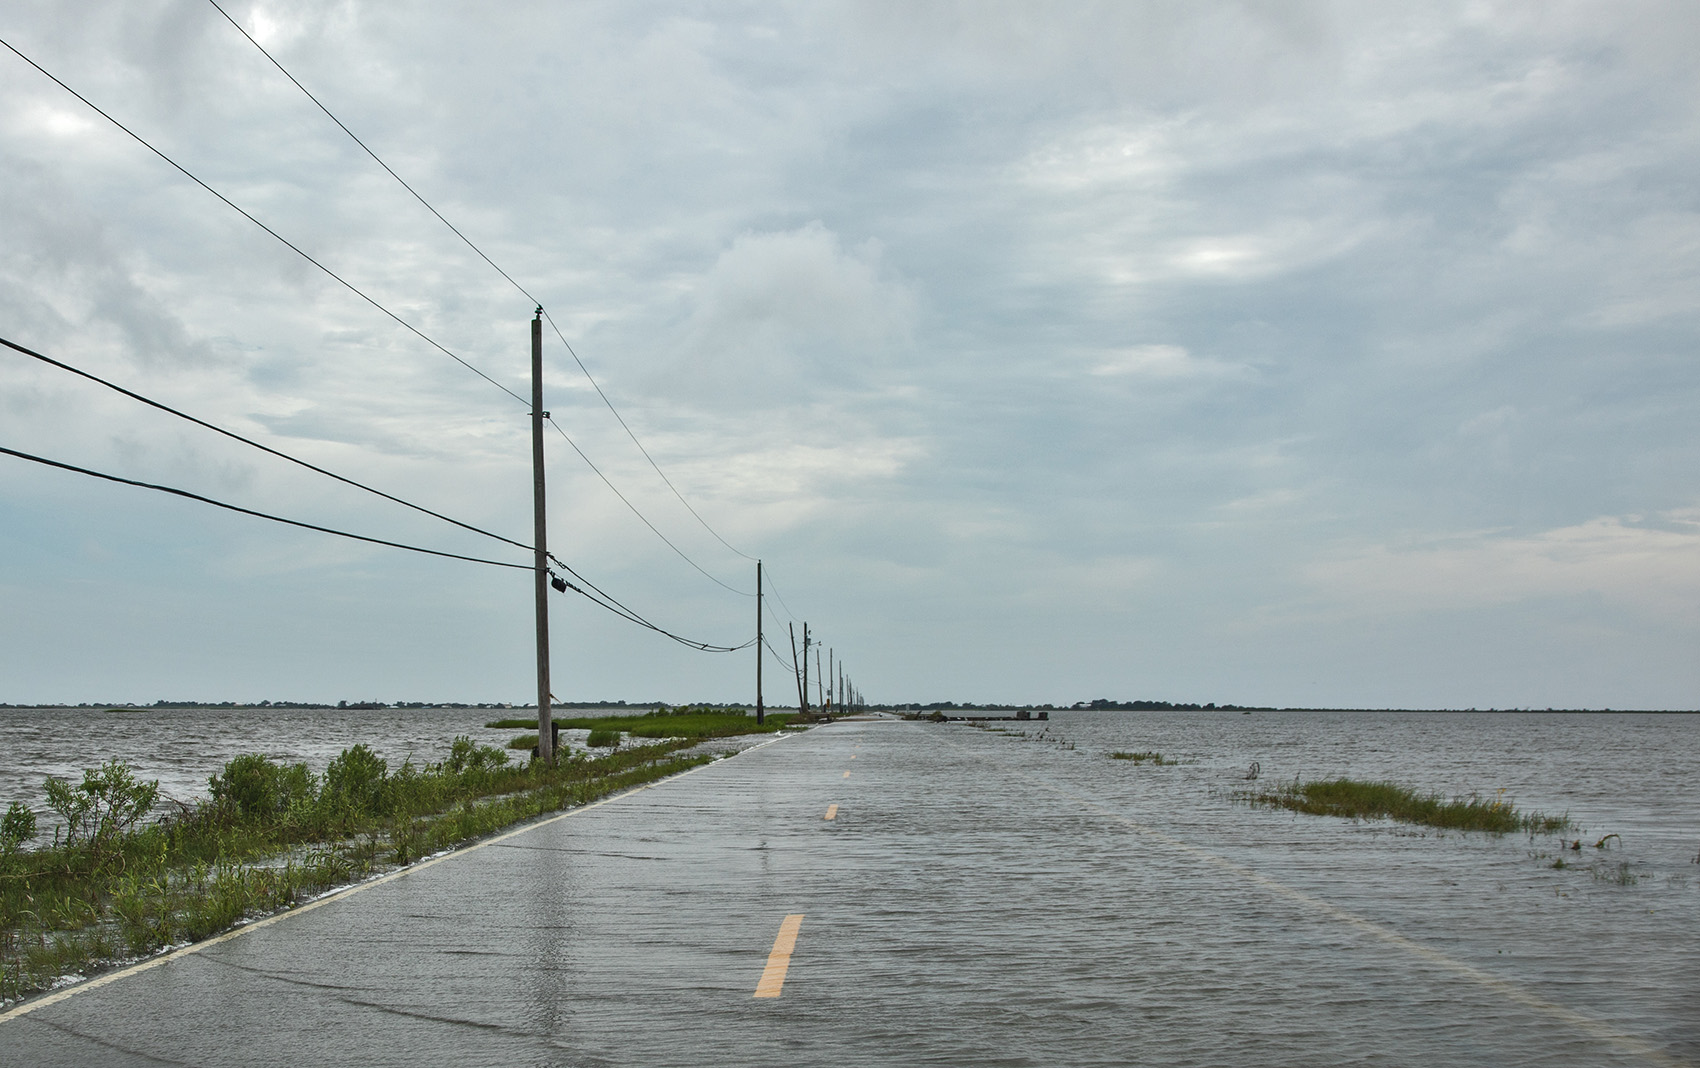 After Barry: Returning to a Threatened Home